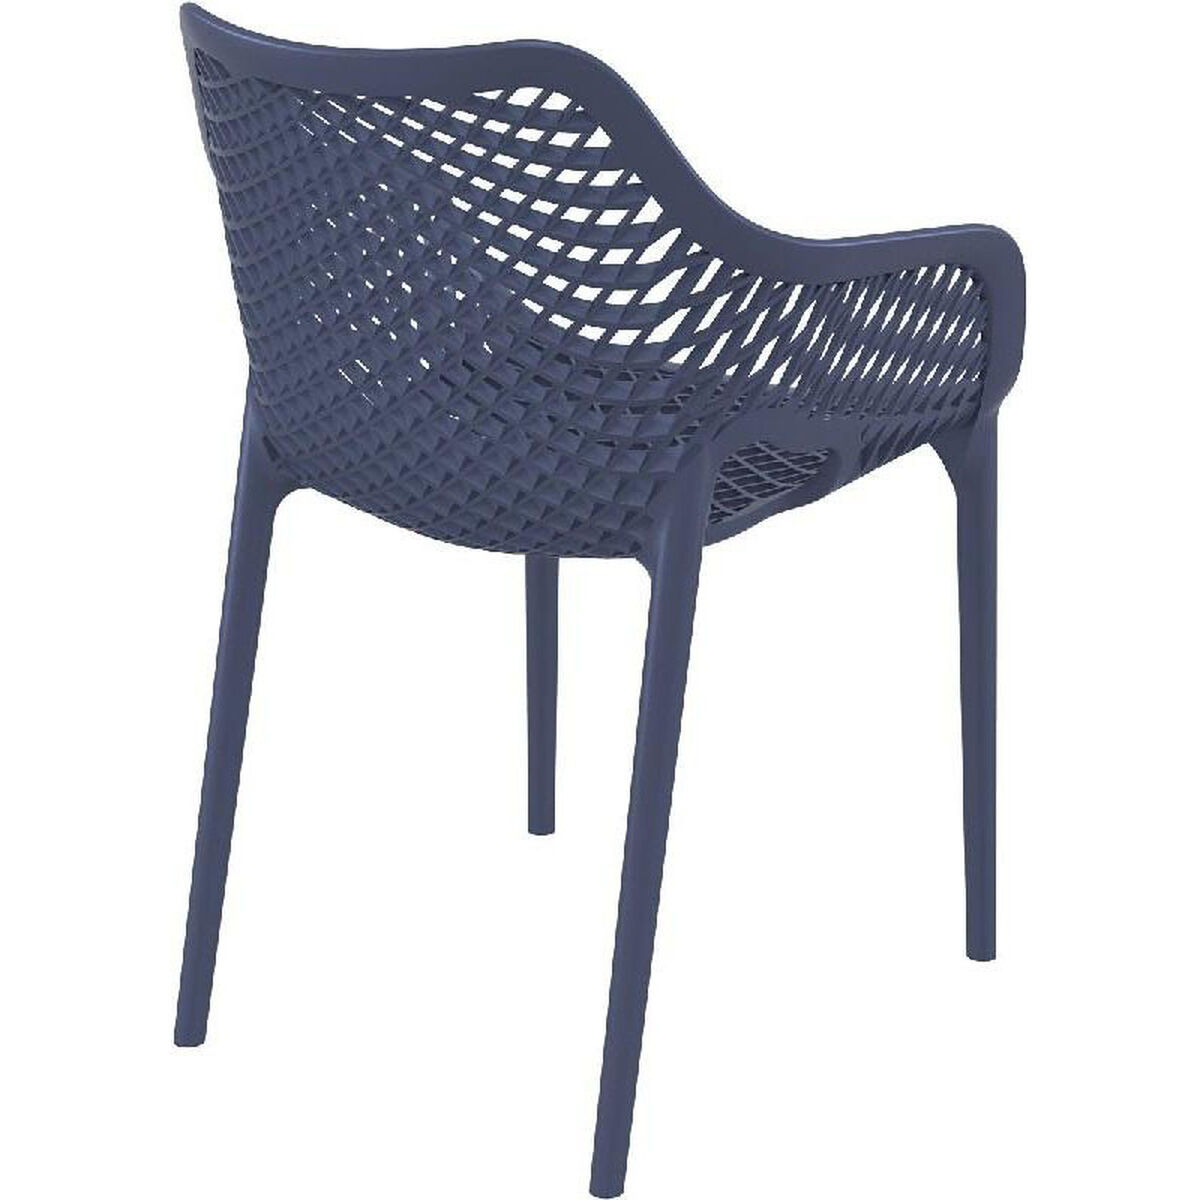 Gray Resin Outdoor Dining Chair Isp007 Dgr